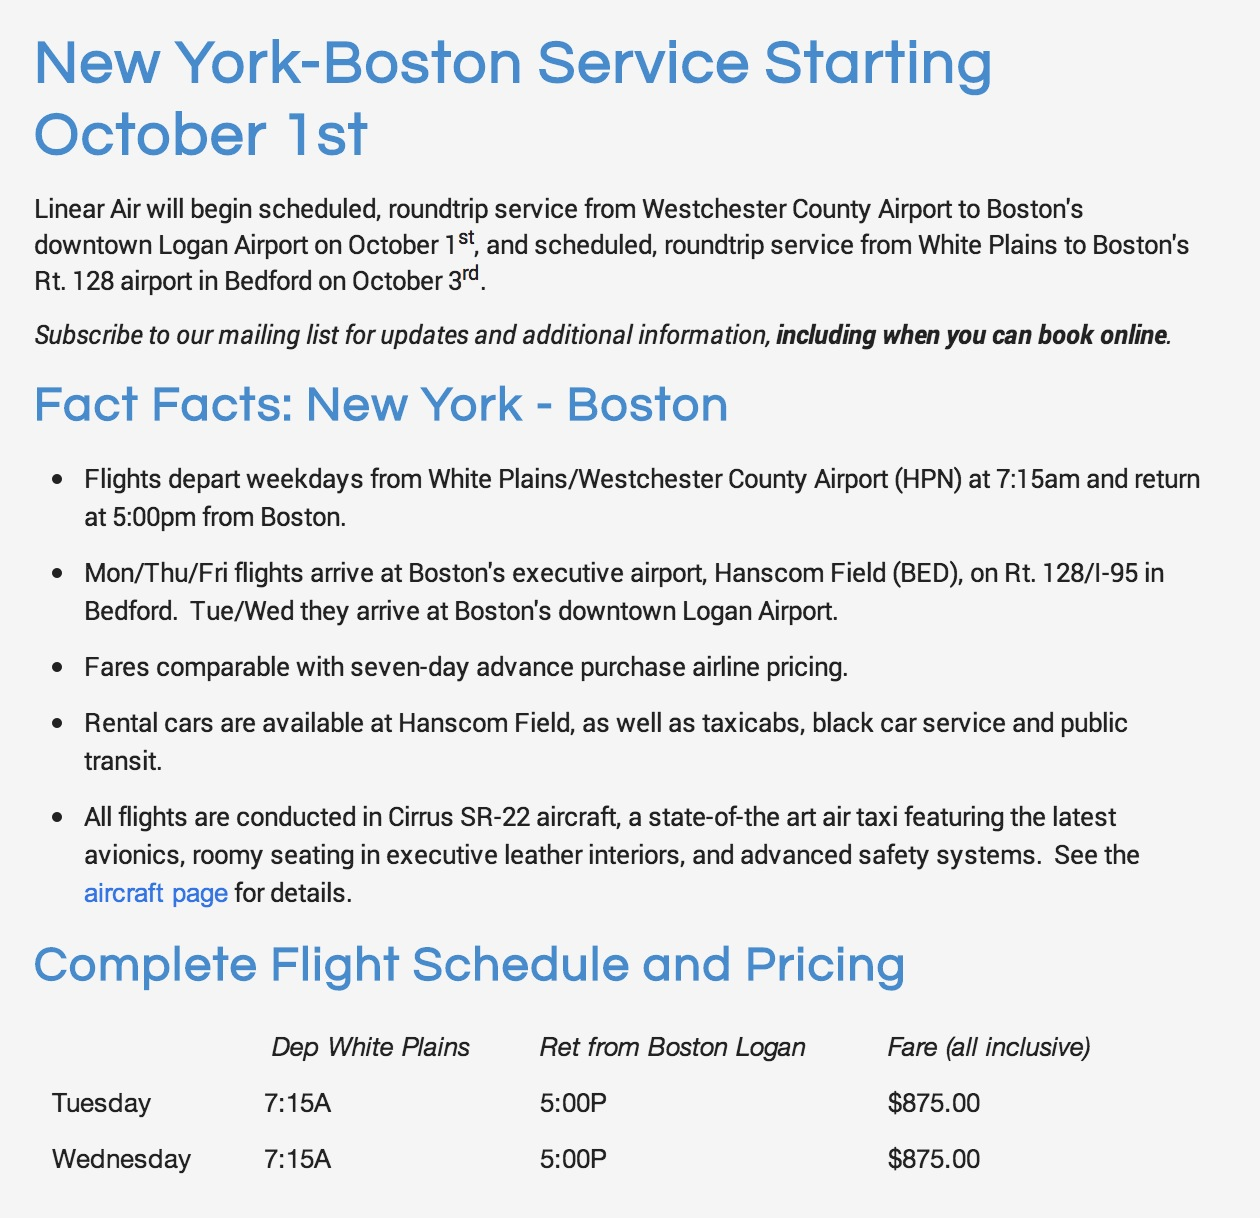 New Air Taxi Service Launches the Only Scheduled Non-Stop Flights From White Plains to Boston on October 1st